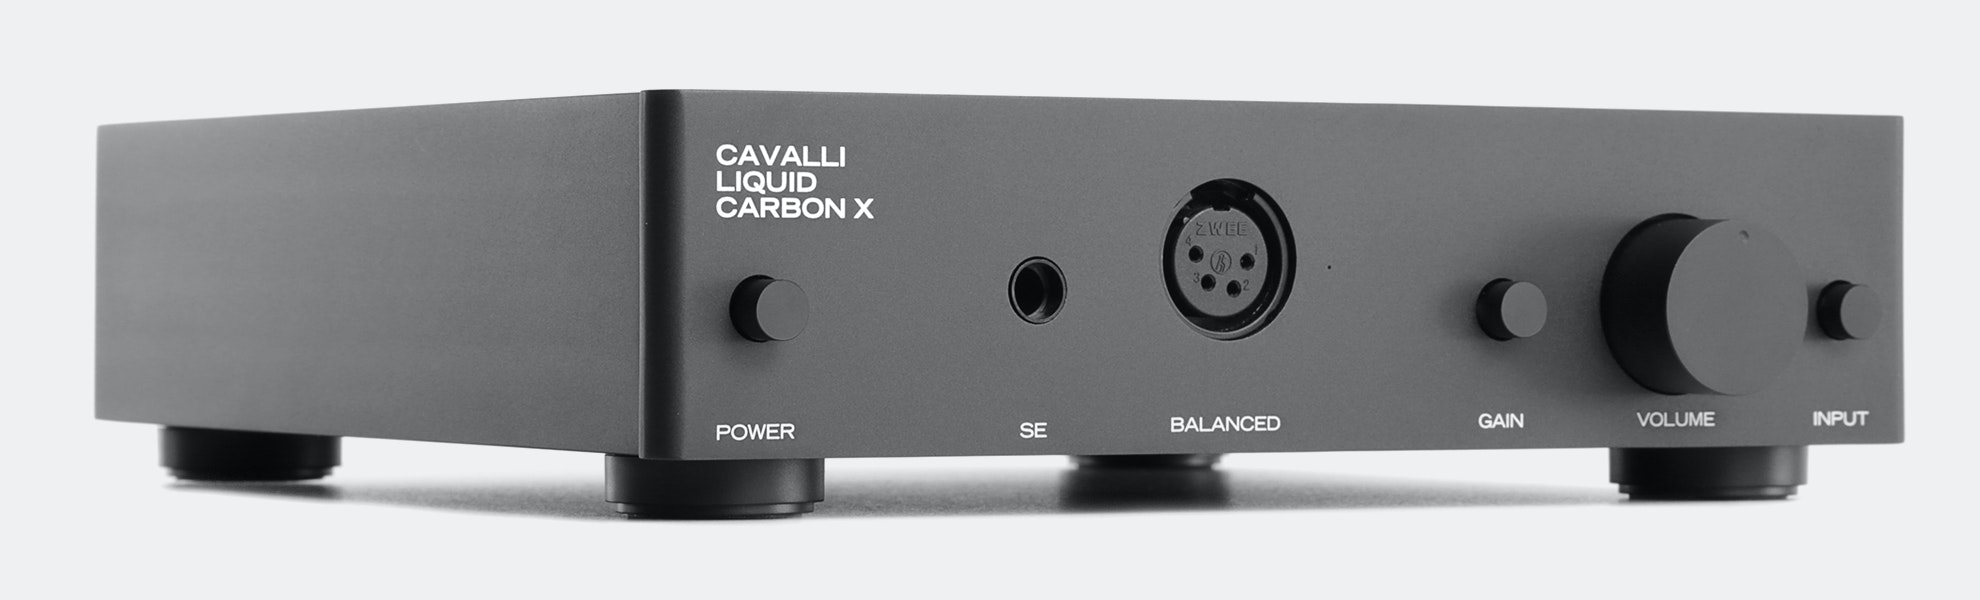 Massdrop x Alex Cavalli Liquid Carbon X Amp